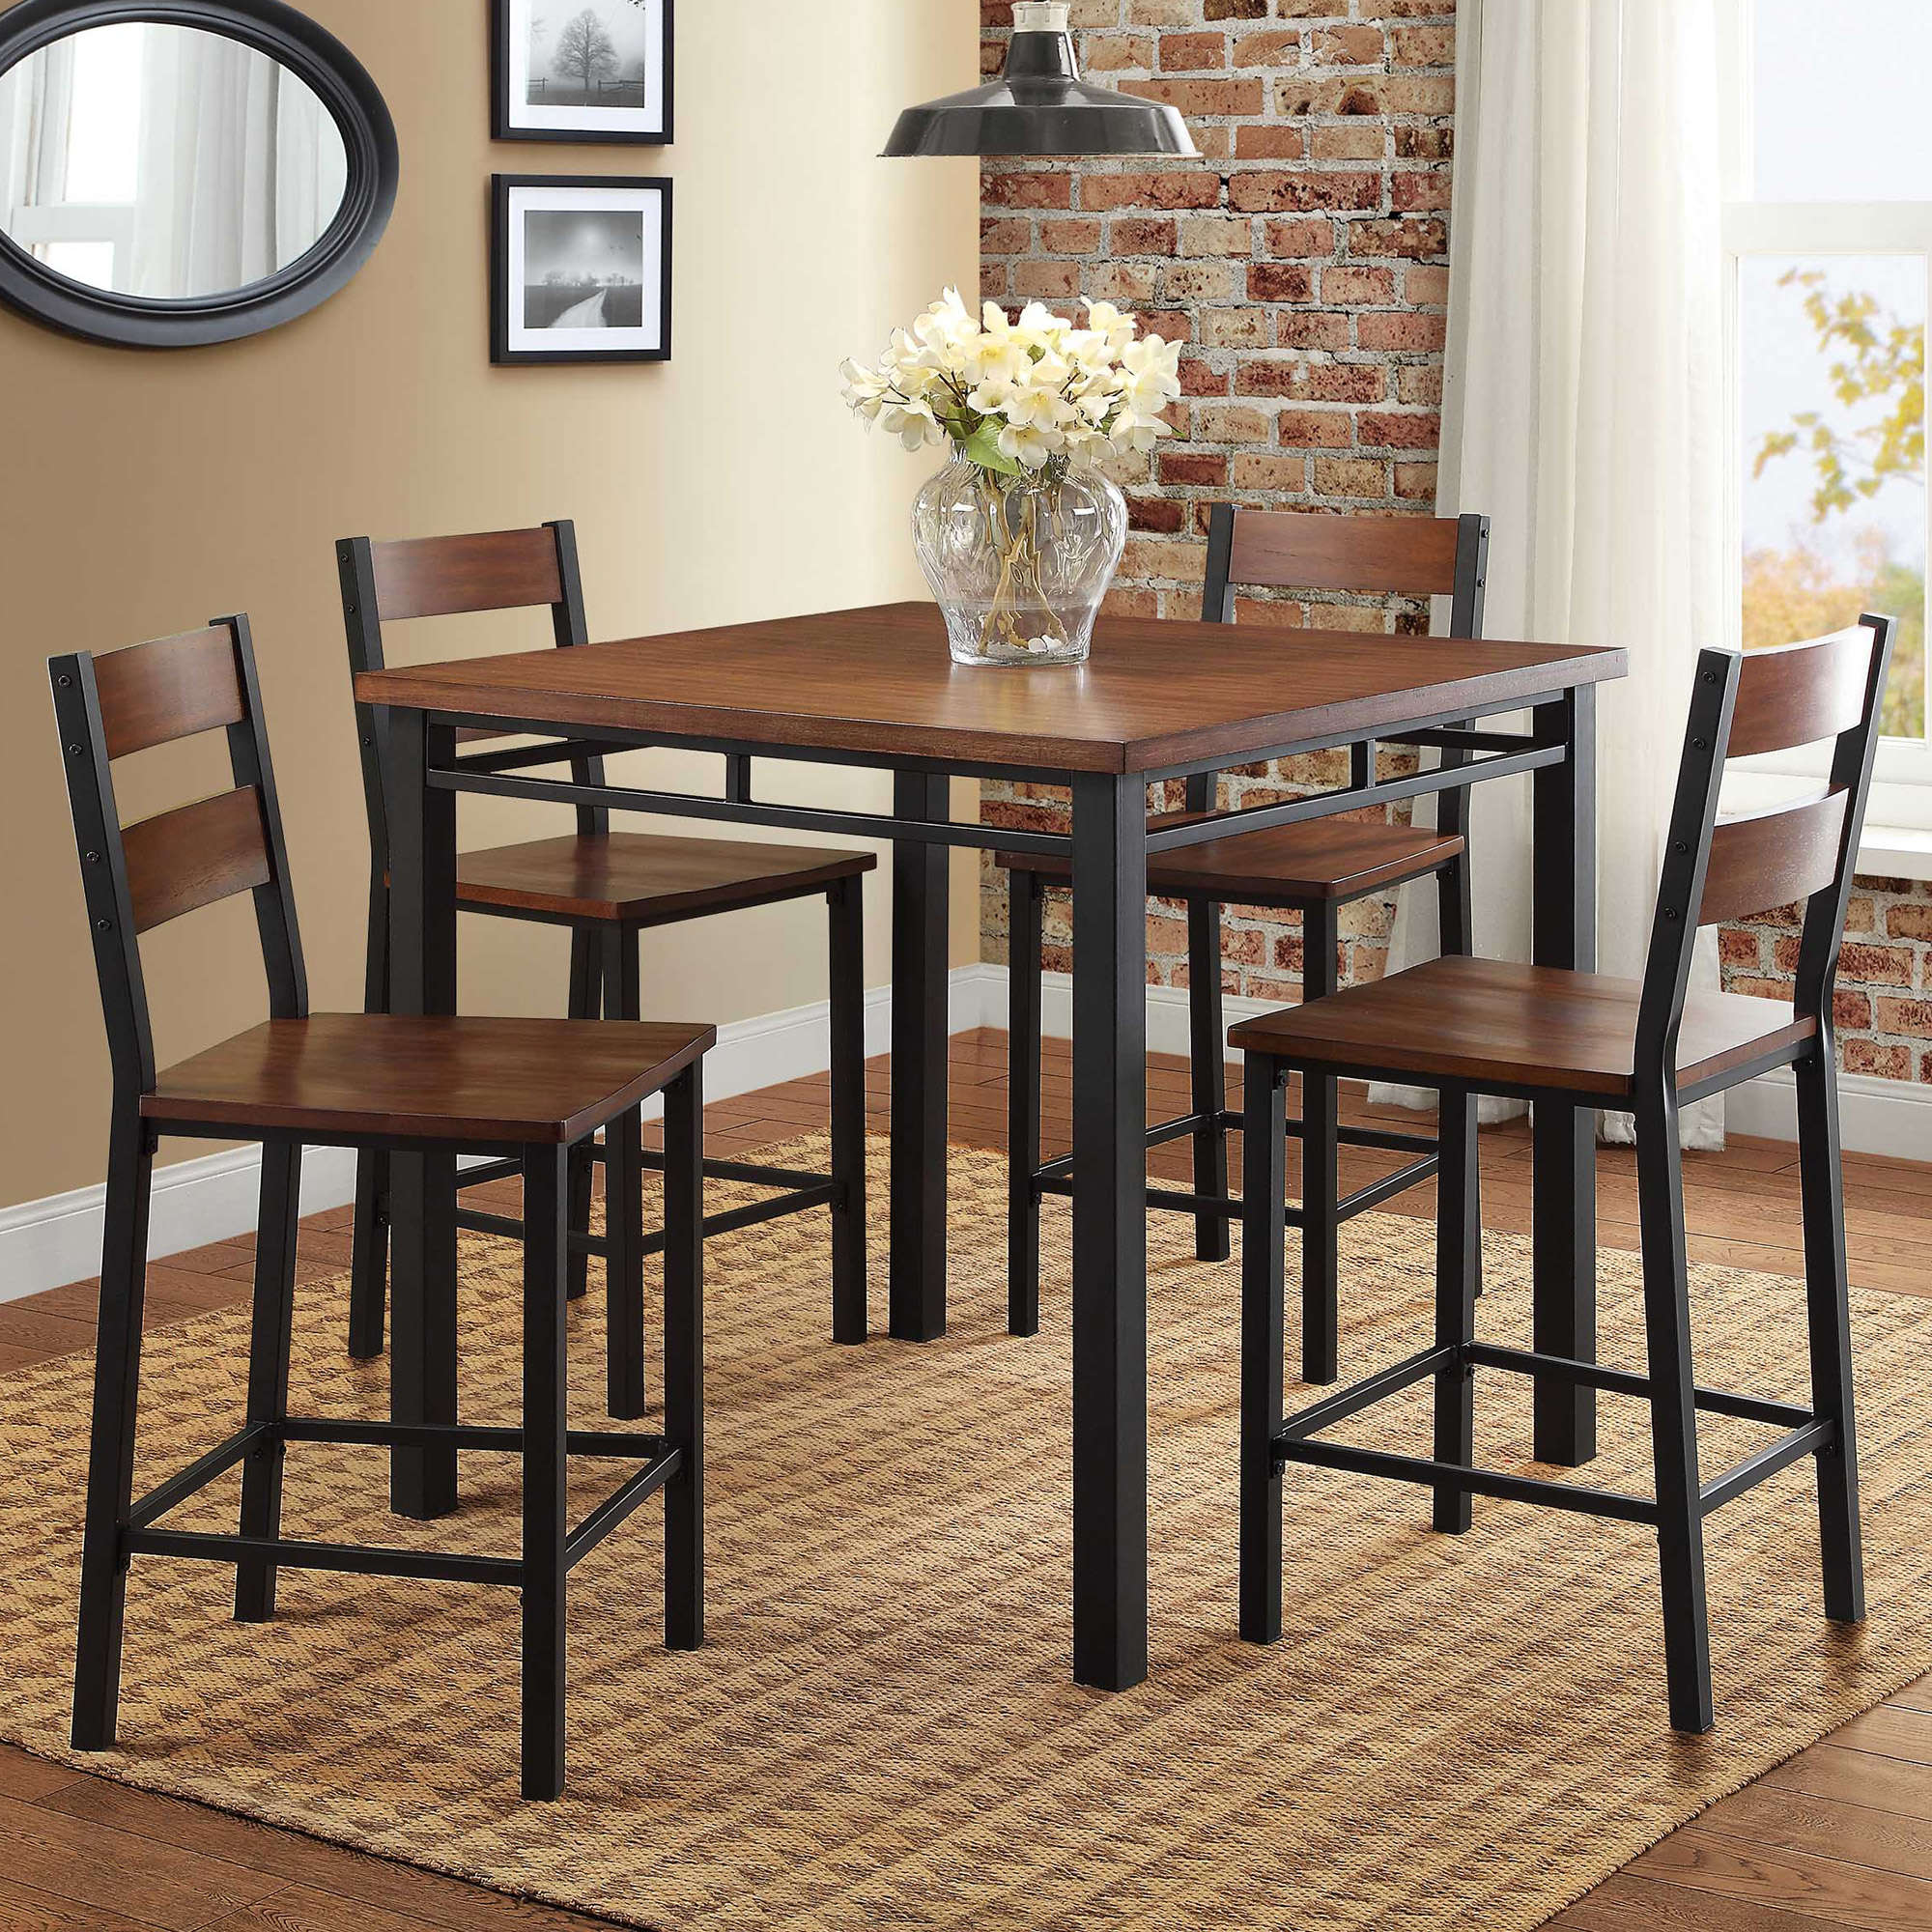 Better Homes & Gardens Mercer 5-Piece Counter Height Dining Set, Vintage Oak